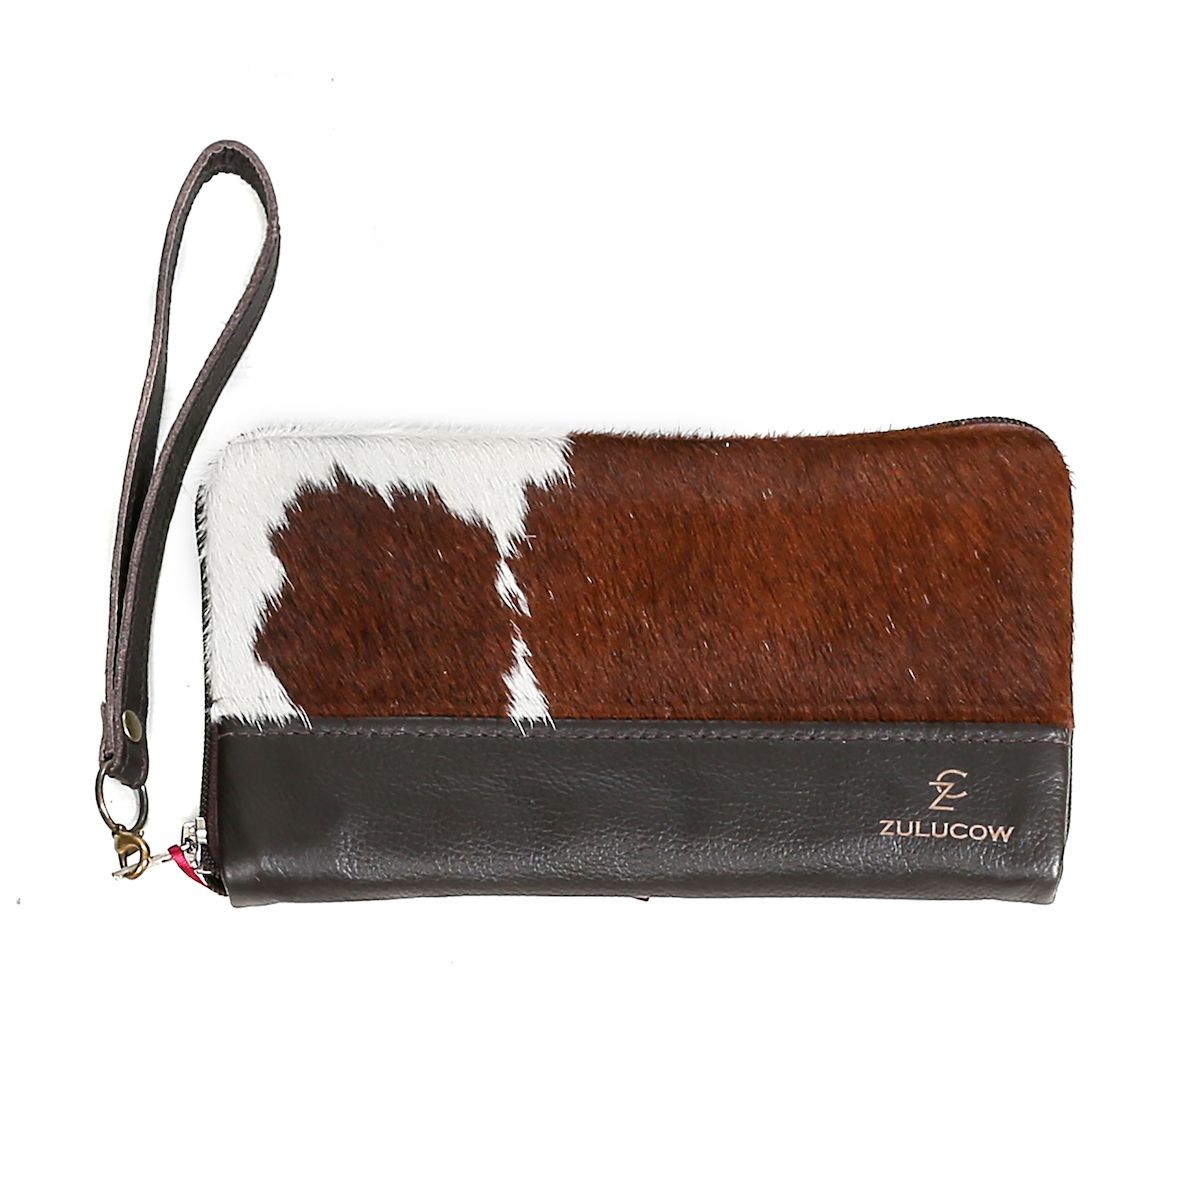 cowhide purse, wallet, travel wallet, clutch, cowhide clutch, sustainable fashion, slow fashion, sustainable, handmade purse, artisan-made, ethically made, christmas gifts for her, leather wallet